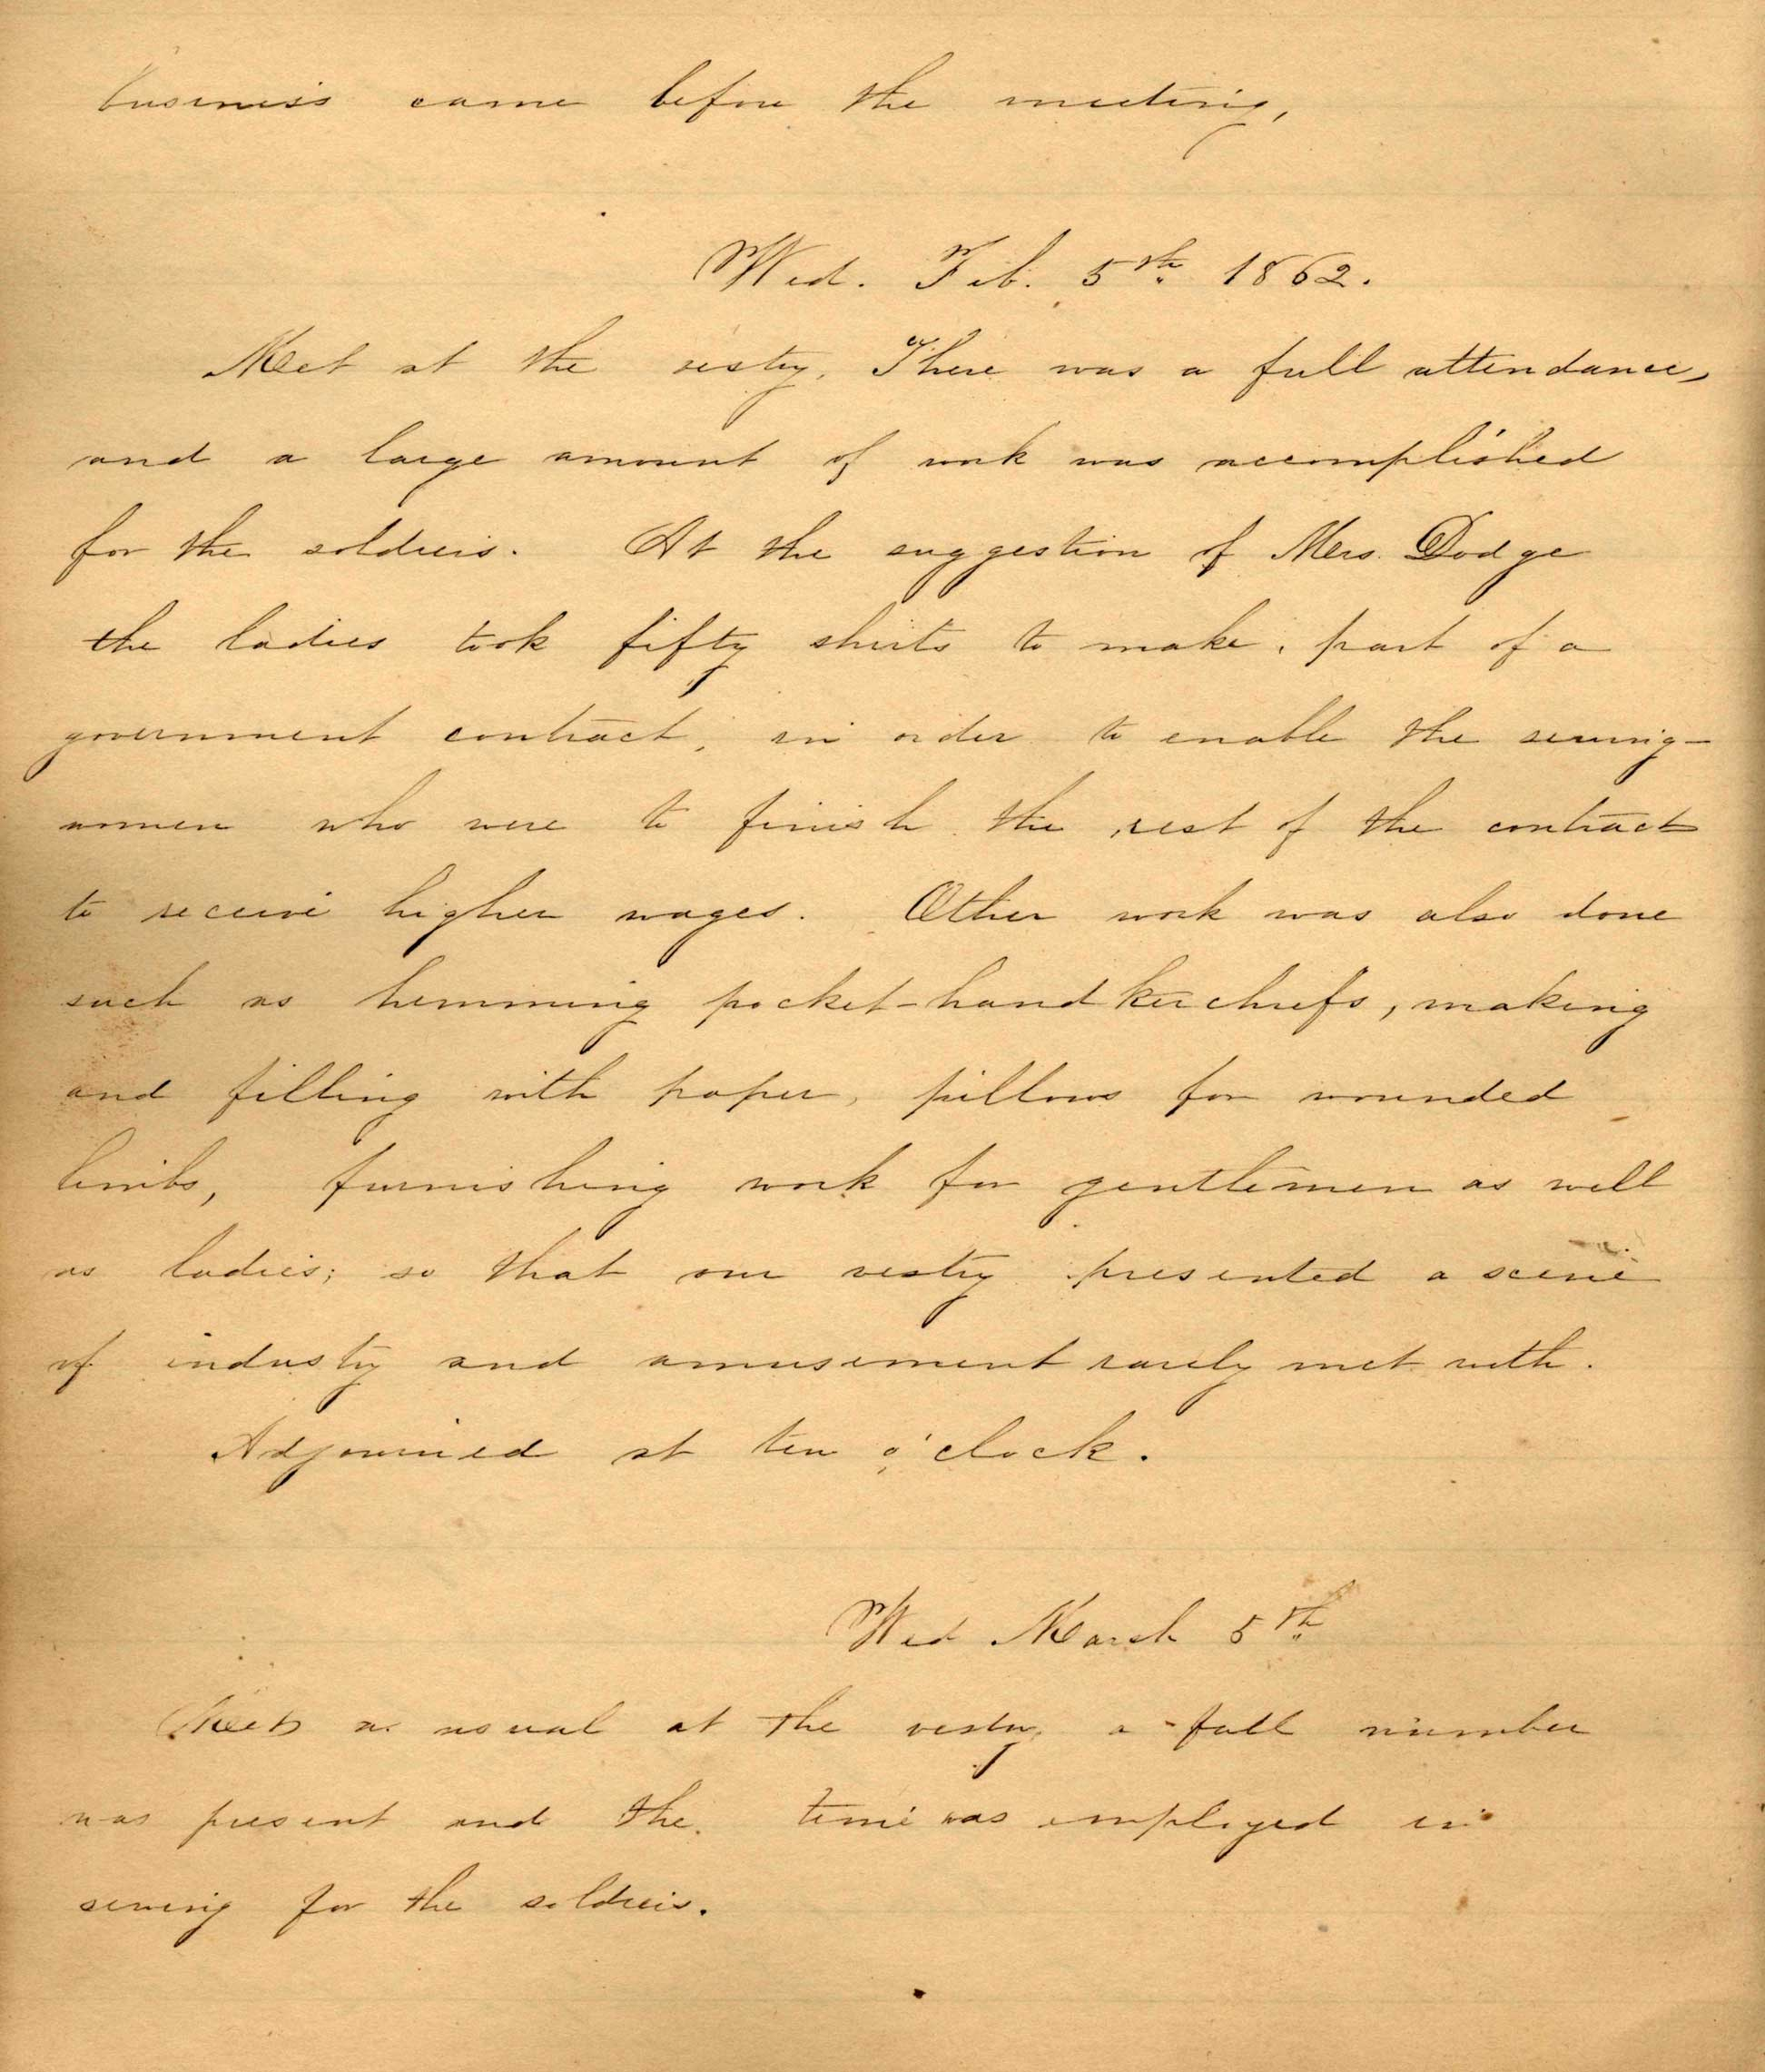 Page from handwritten records from 1862